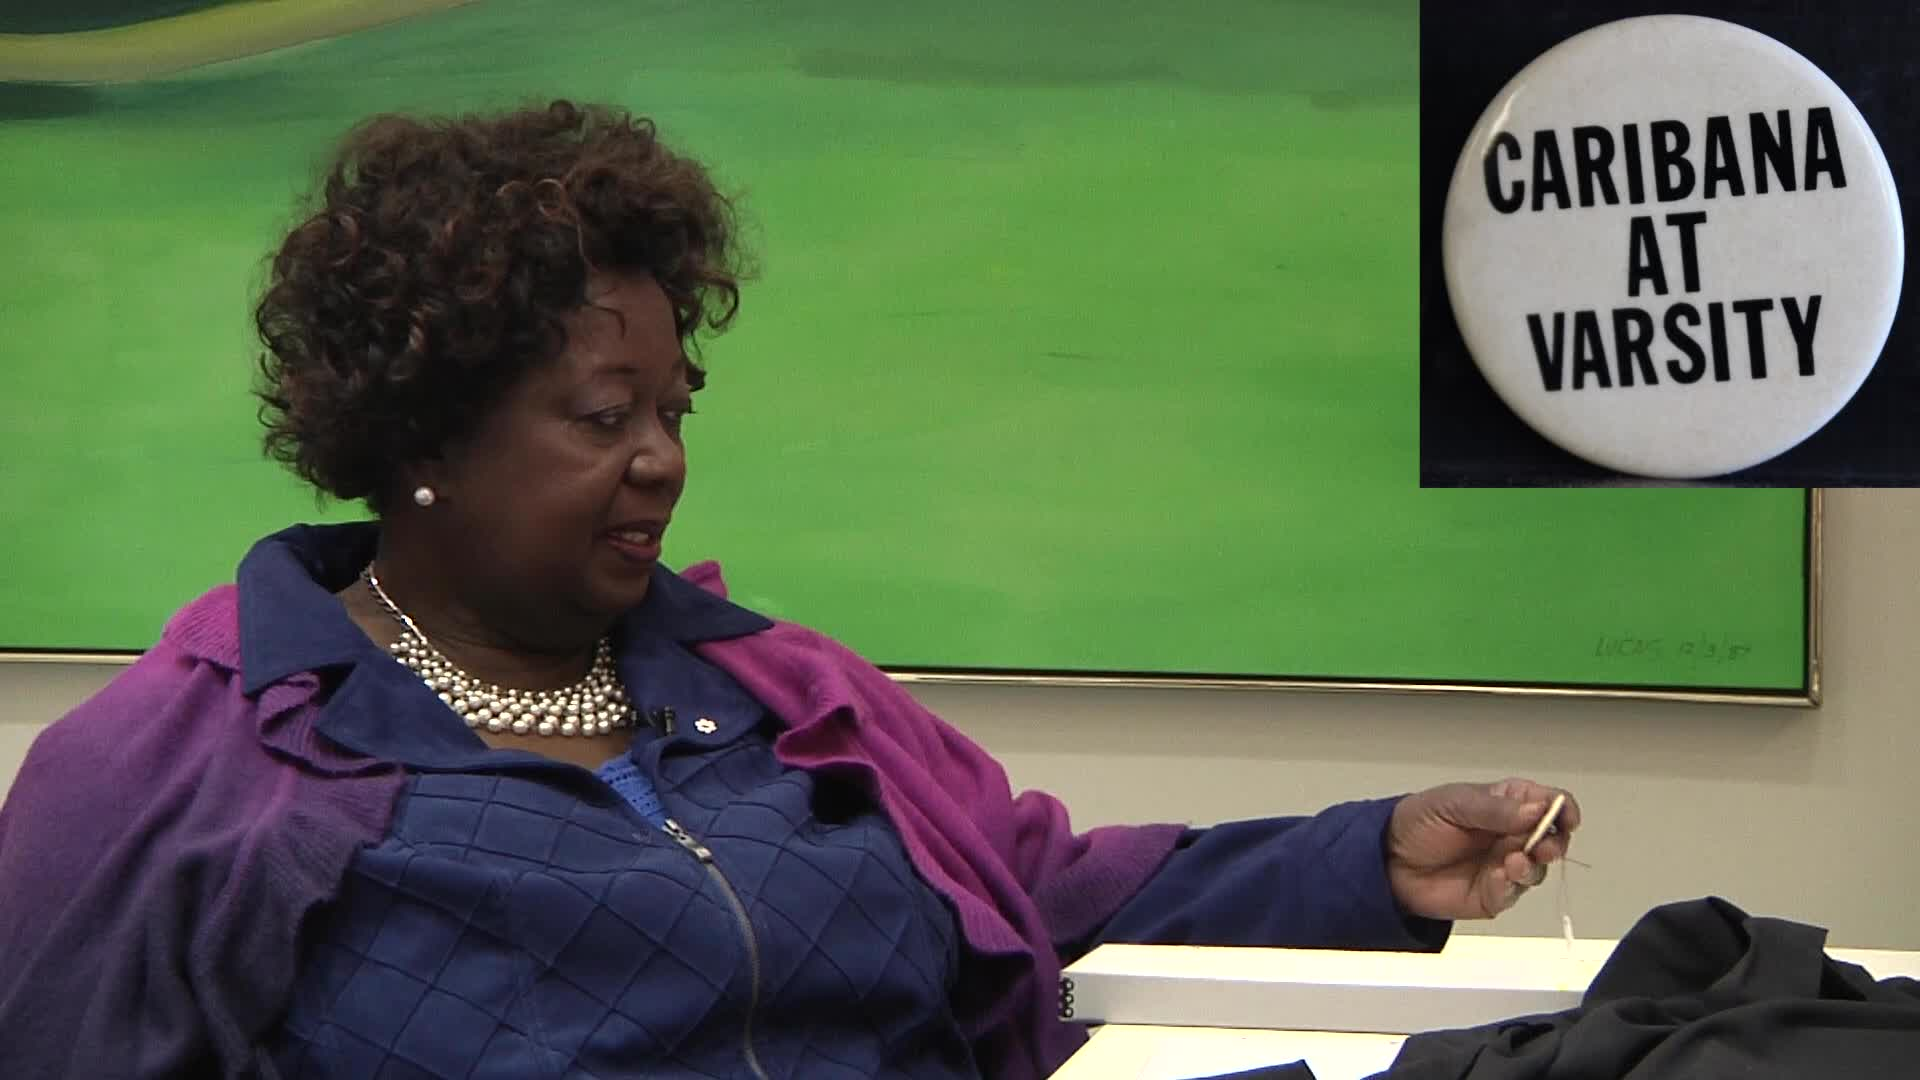 Jean Augustine interview: complete with subtitles, April 24, 2014